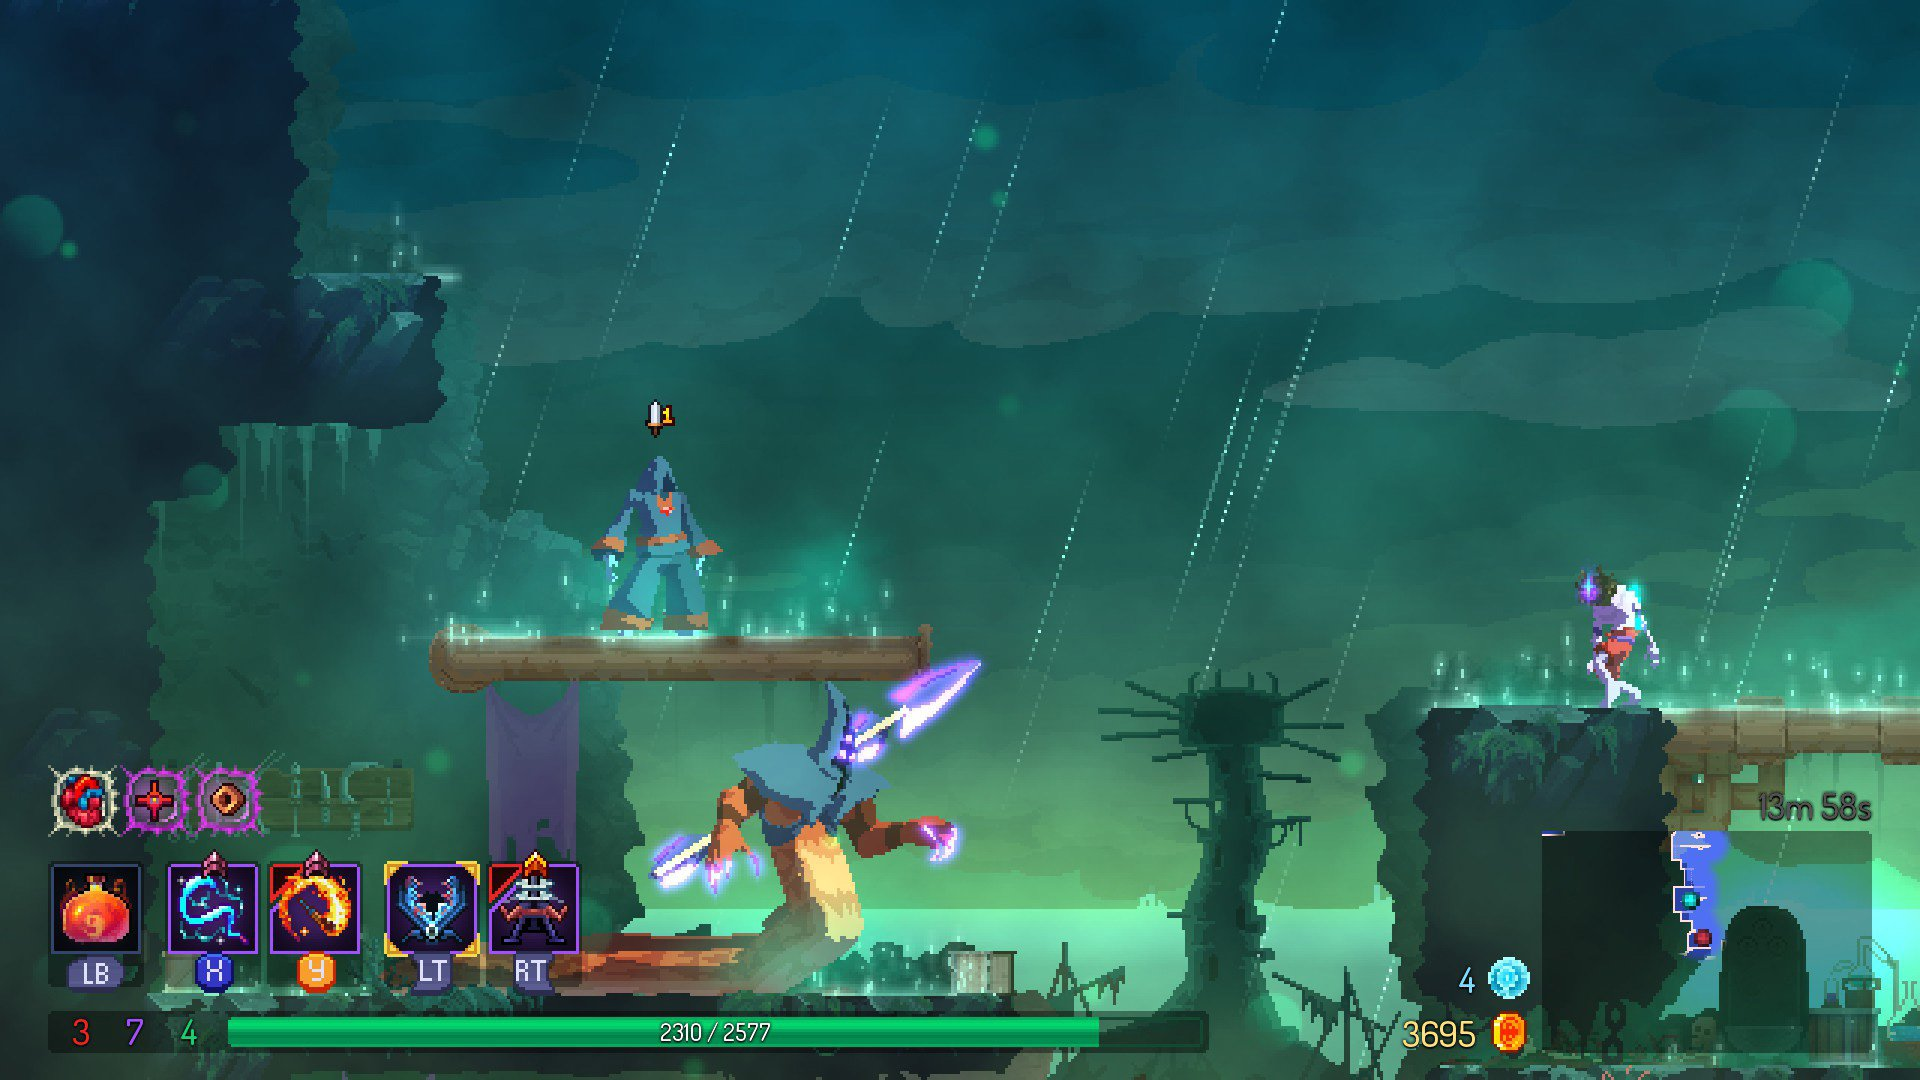 Here's how to find the Fatal Falls levels in Dead Cells screenshot